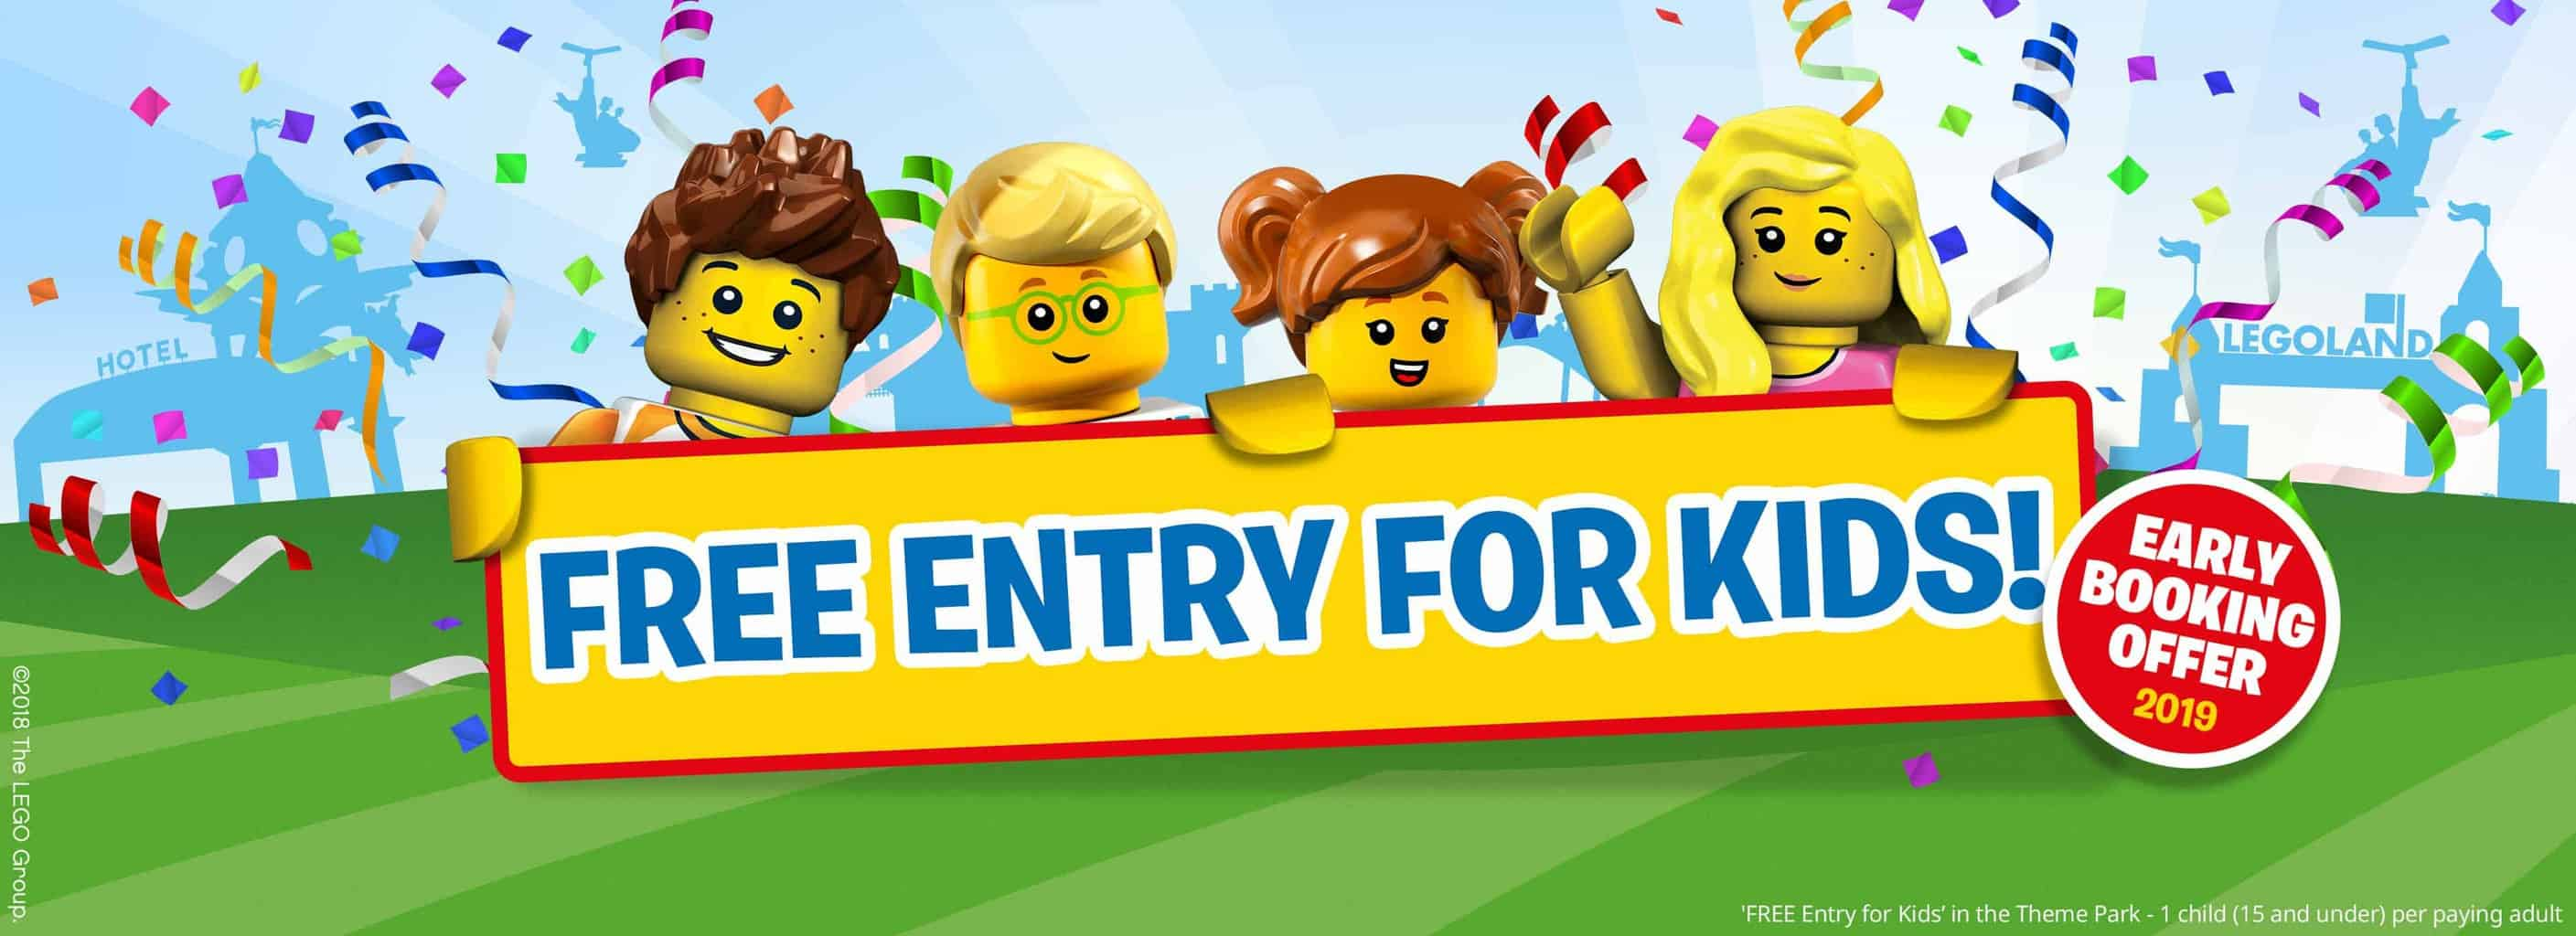 Free-entry-for-kids-d1